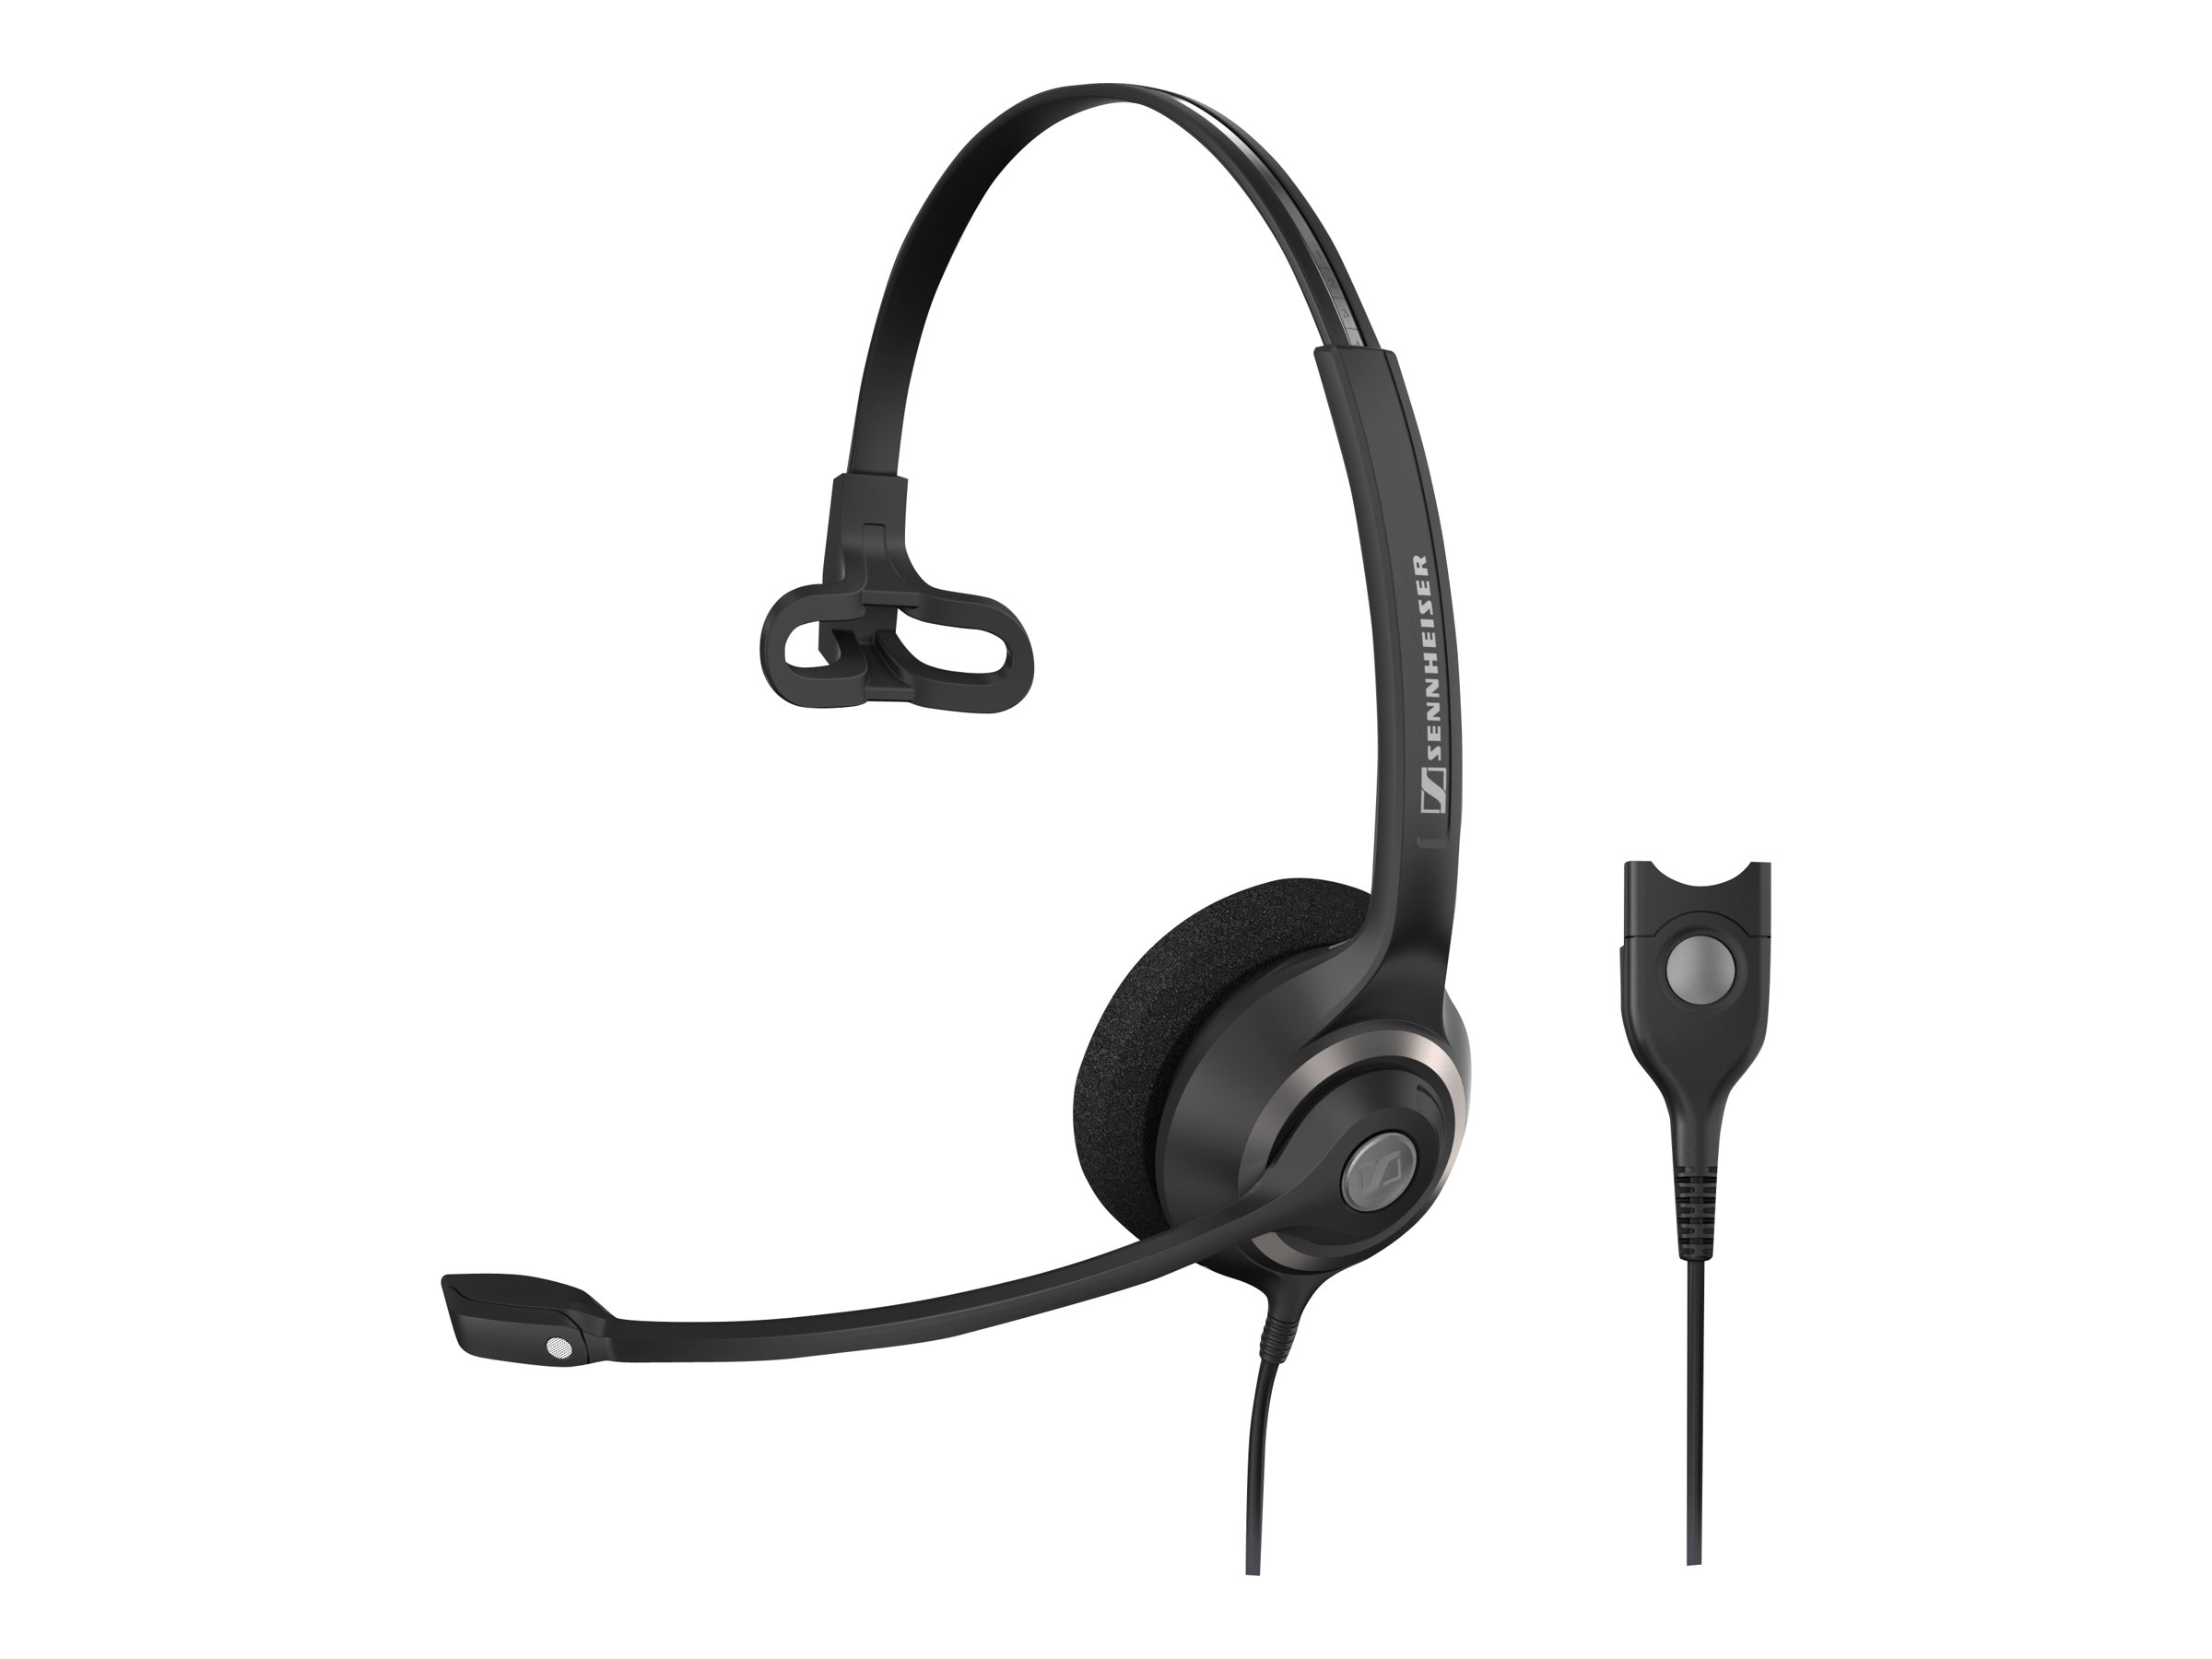 Image for Sennheiser Circle 1 Ear Headset Wideband from Circuit City